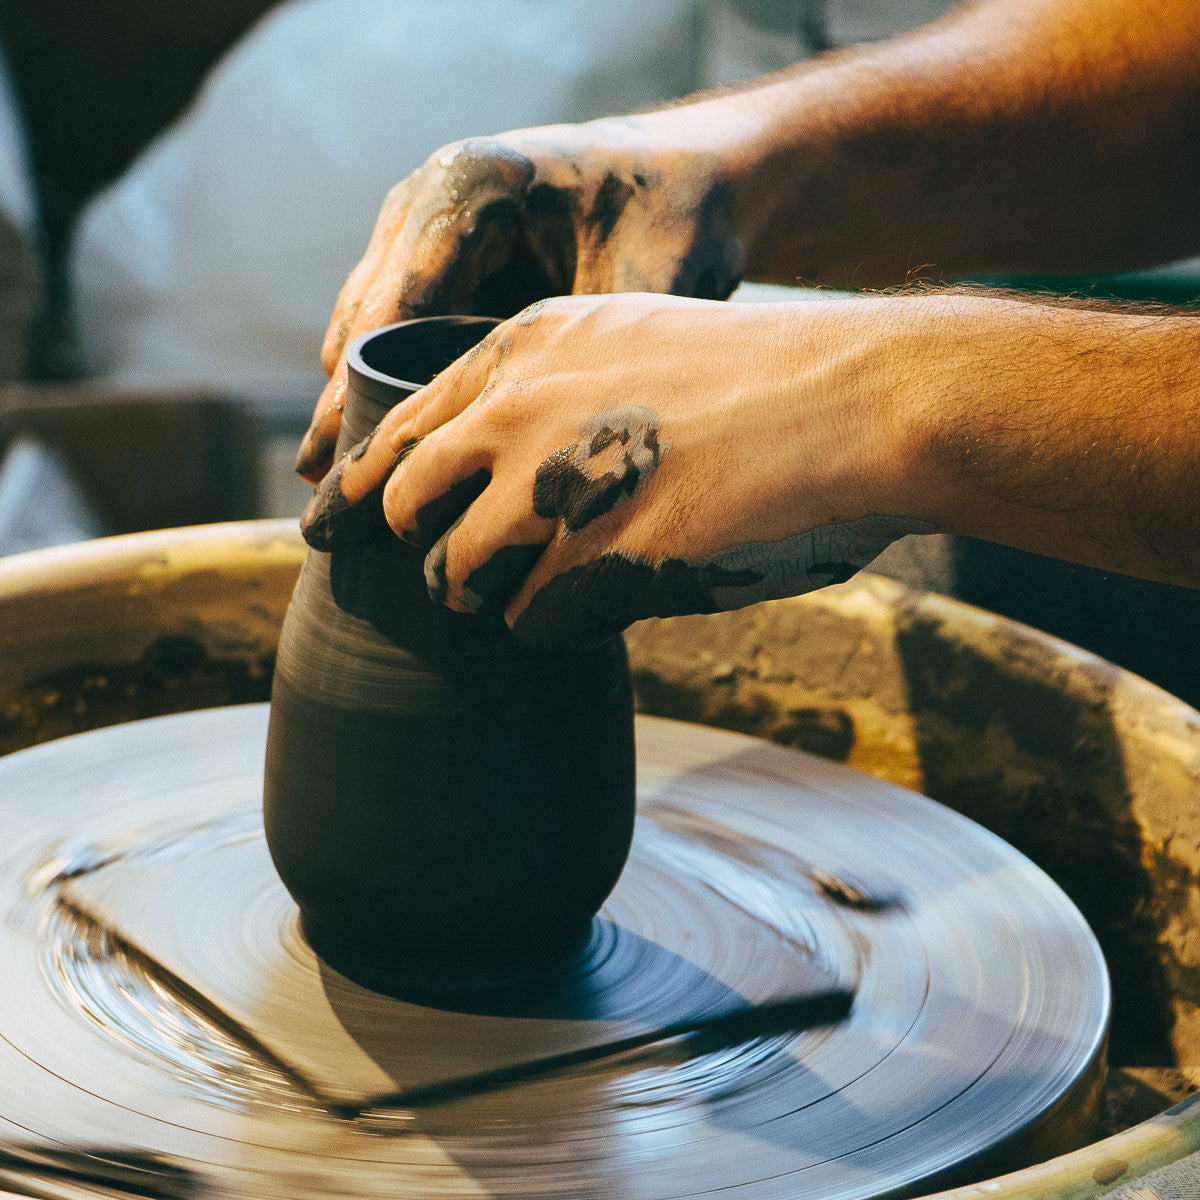 Christian Roy Hand Throwing Ceramics in His Workshop